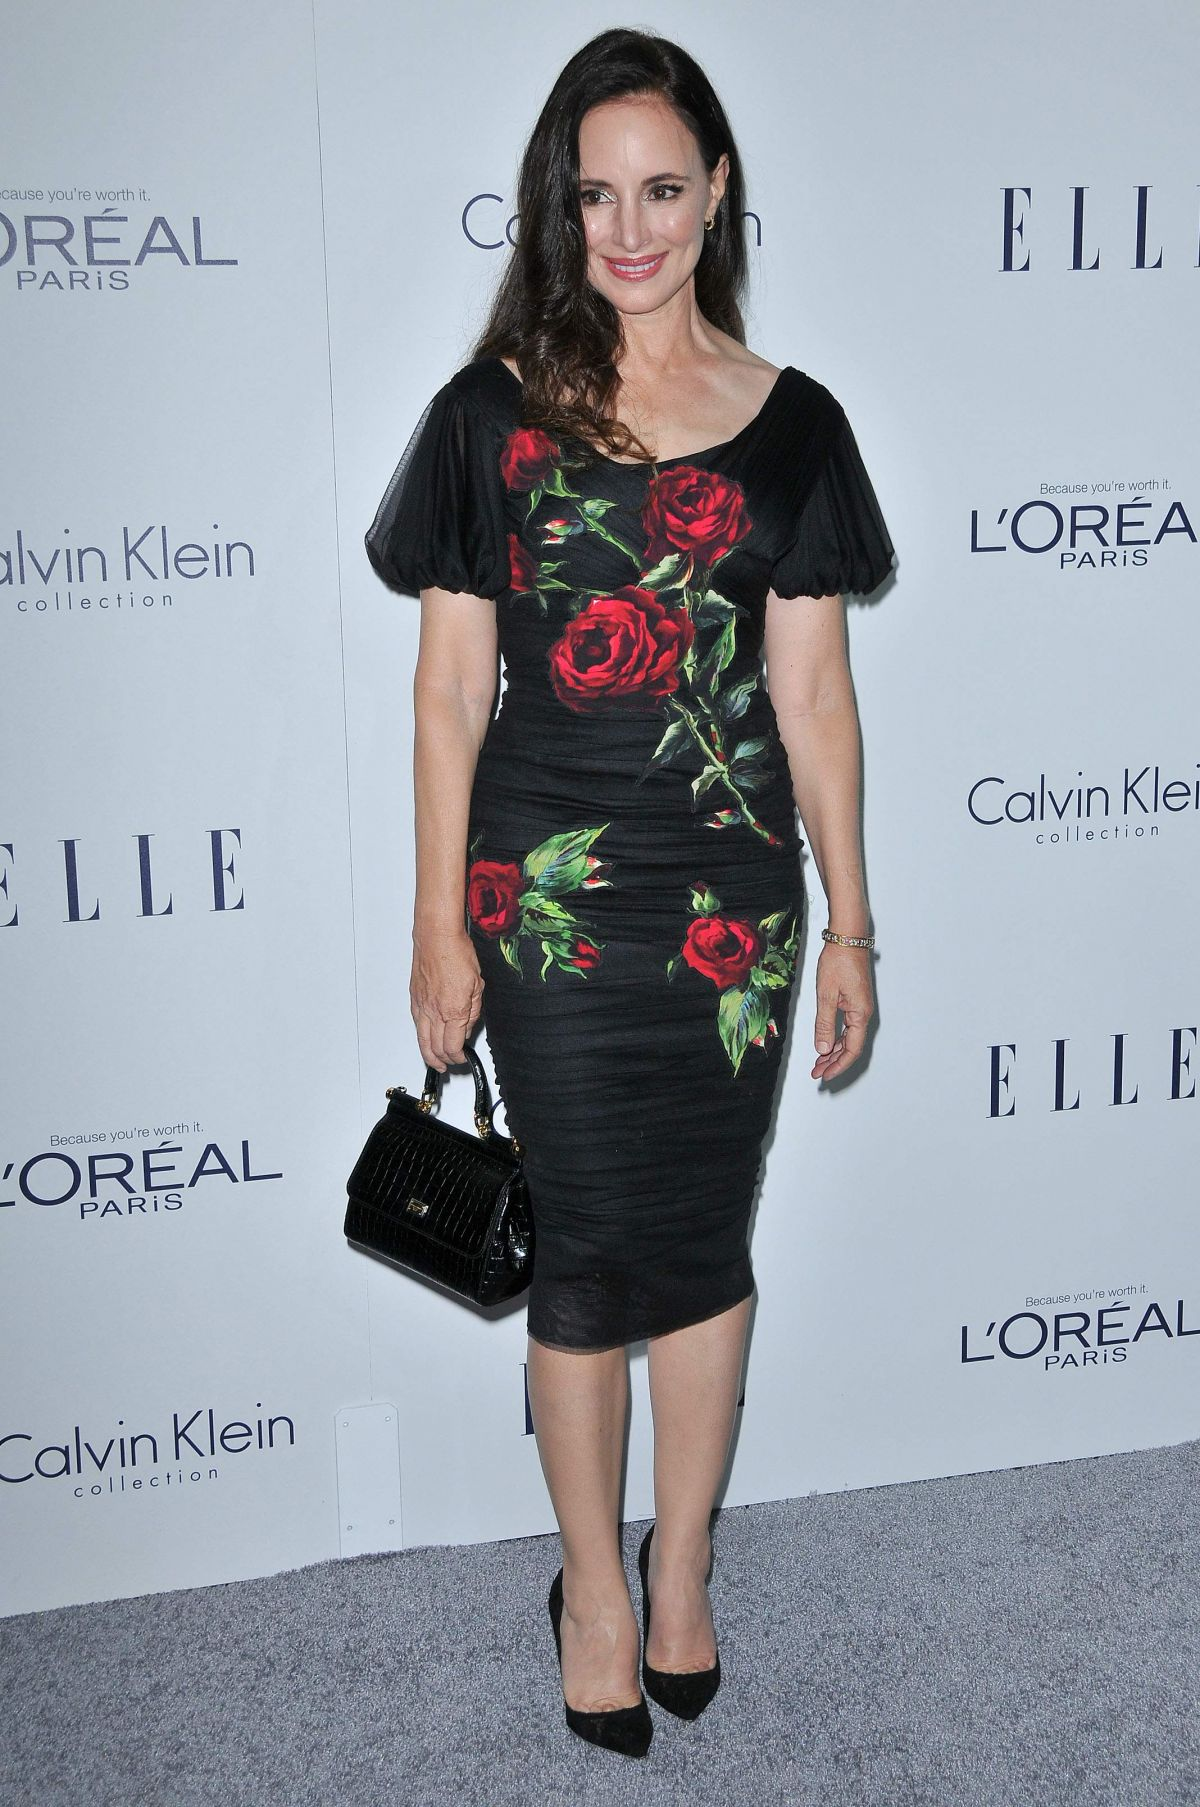 MADELEINE STOWE at 2015 Elle Women in Hollywood Awards in Los Angeles 10/19/2015